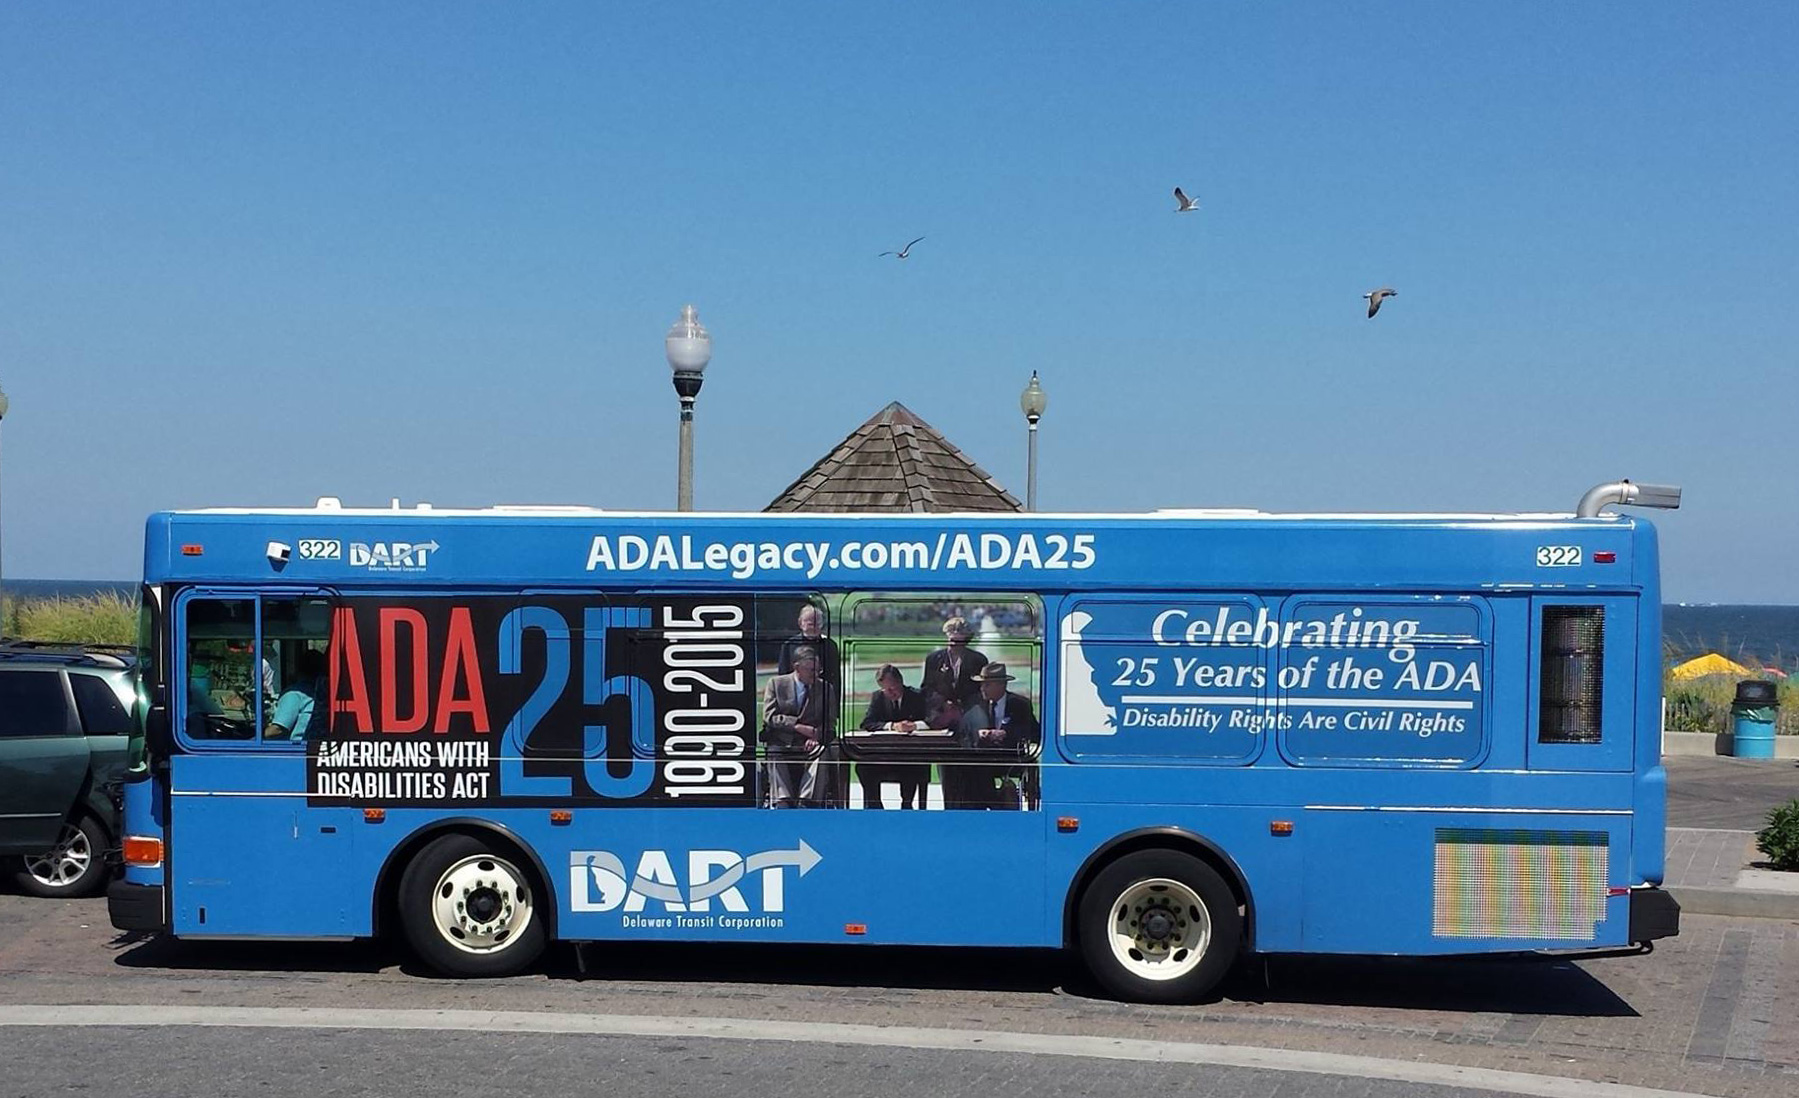 A bus of Delaware Department of Transportation celebrating the ADA 25